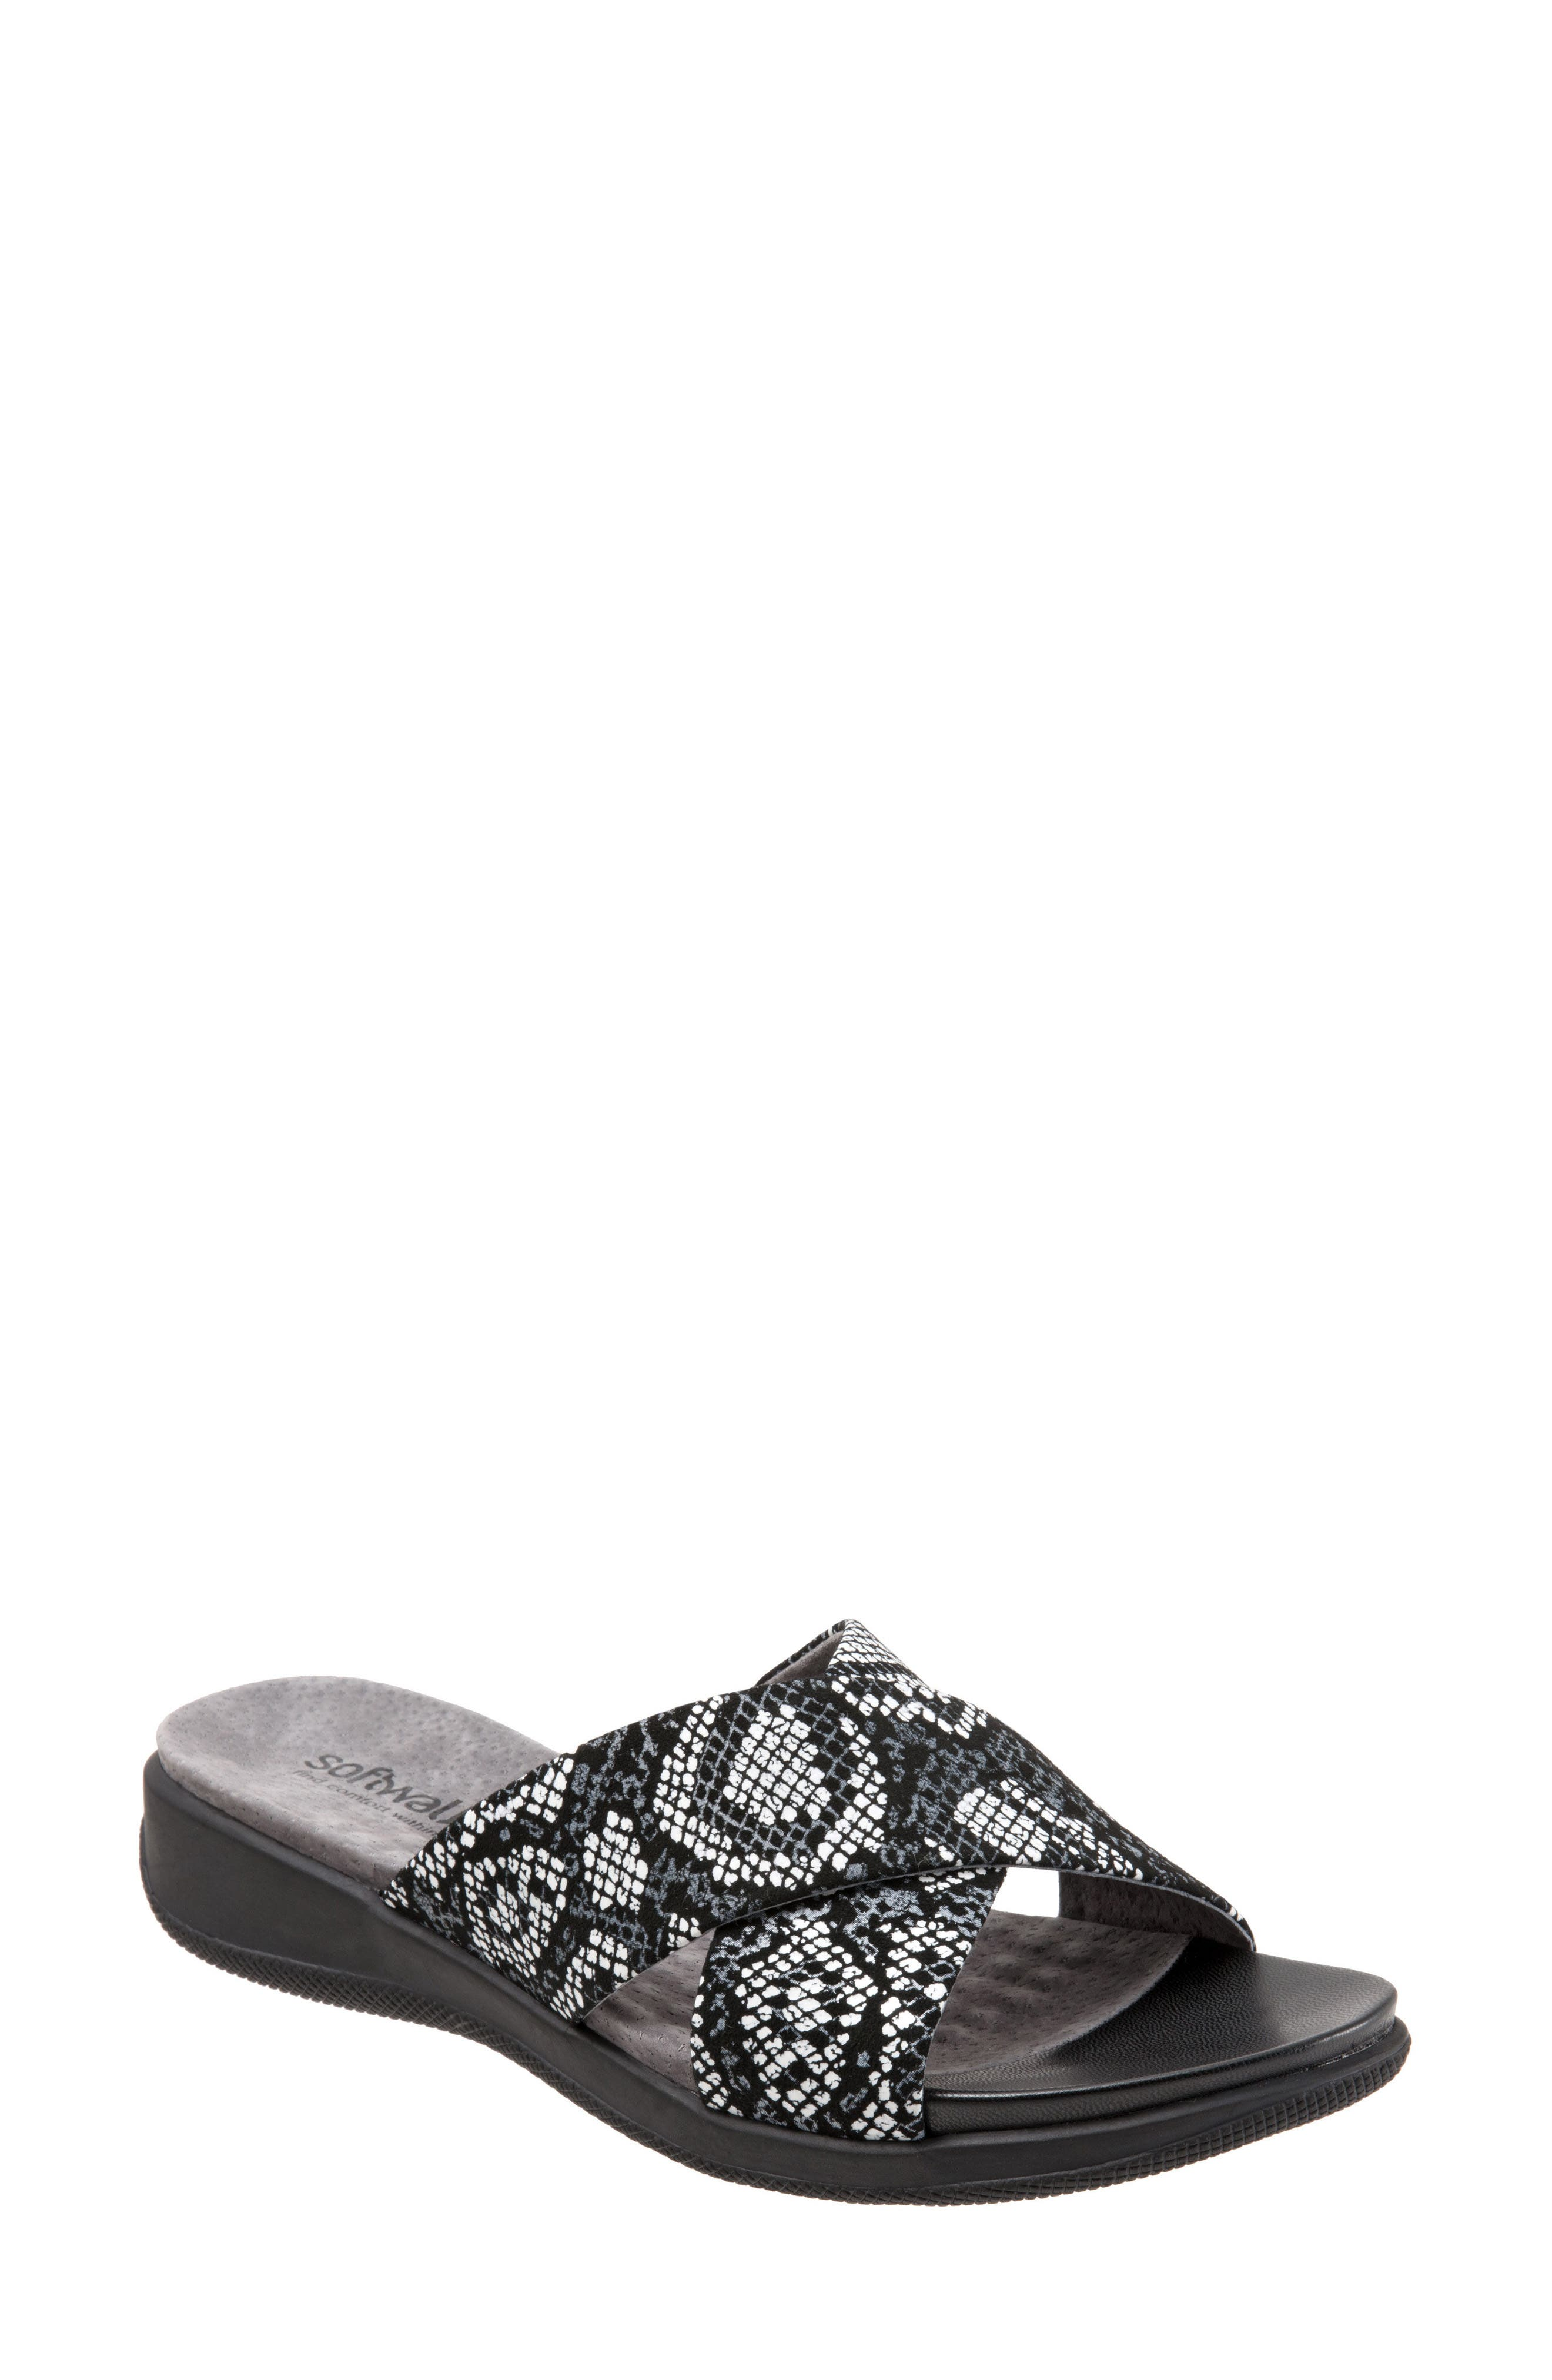 'Tillman' Leather Cross Strap Slide Sandal,                         Main,                         color, Black Leather